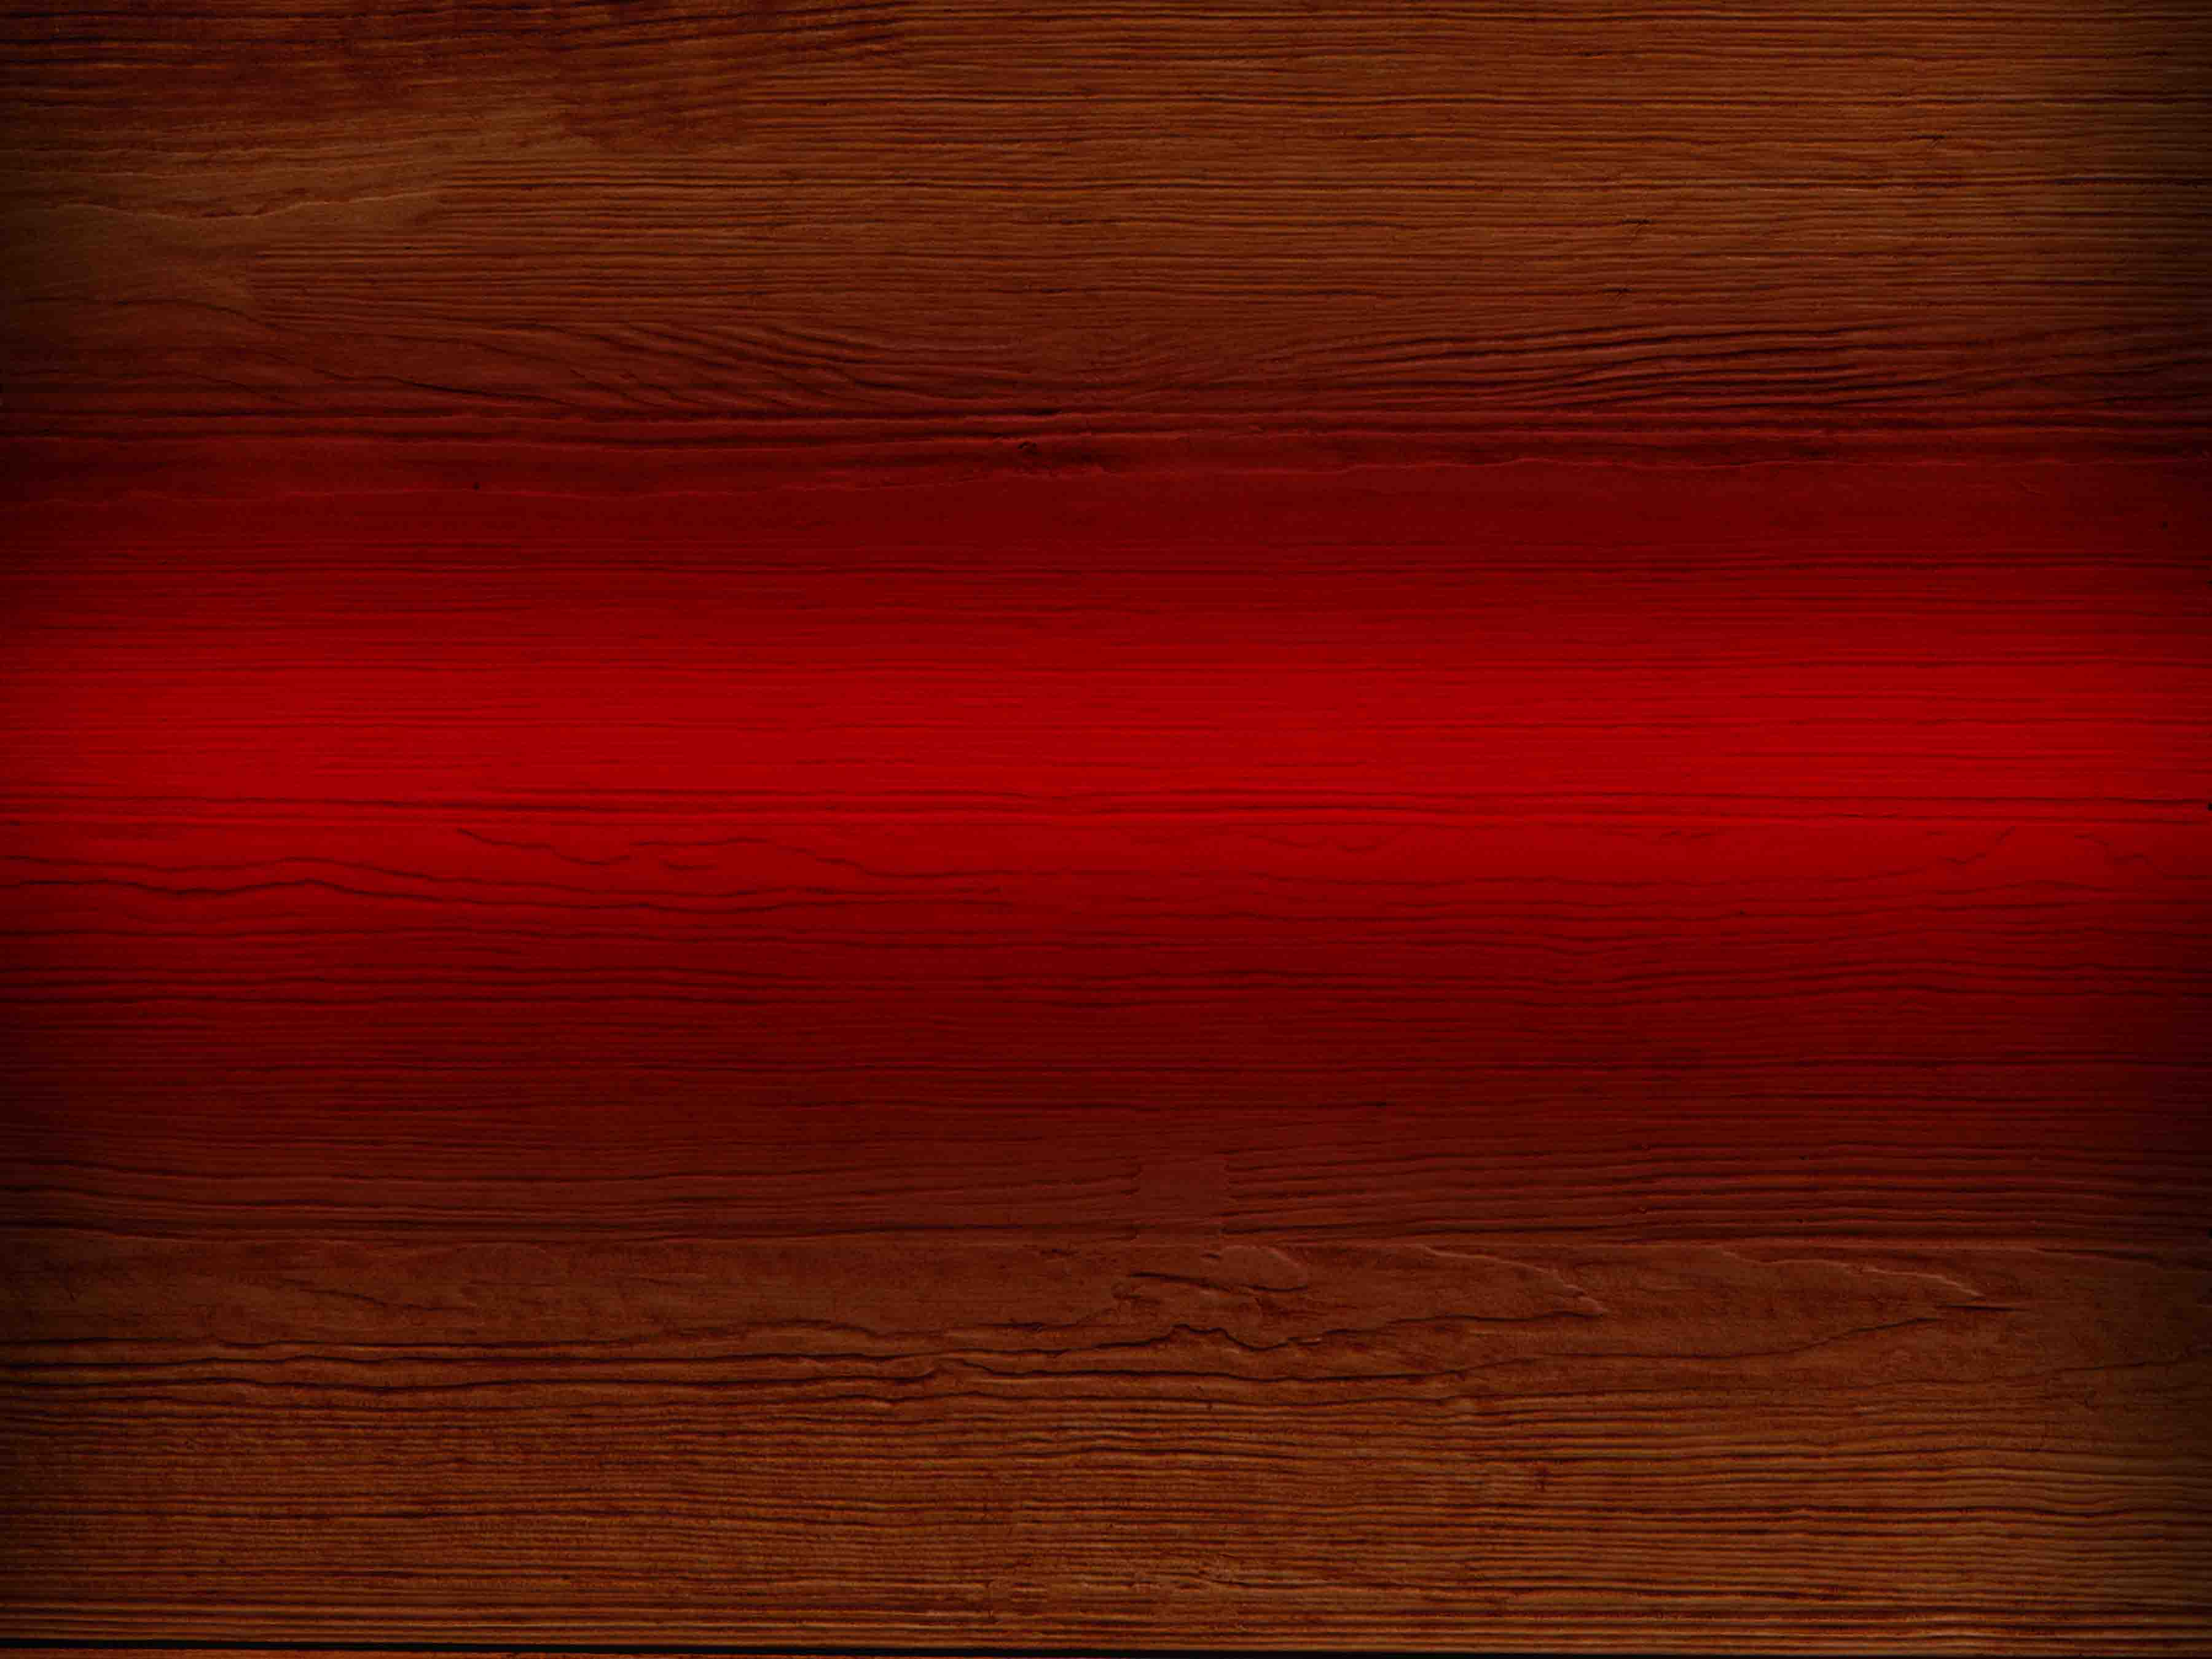 Wood background with red